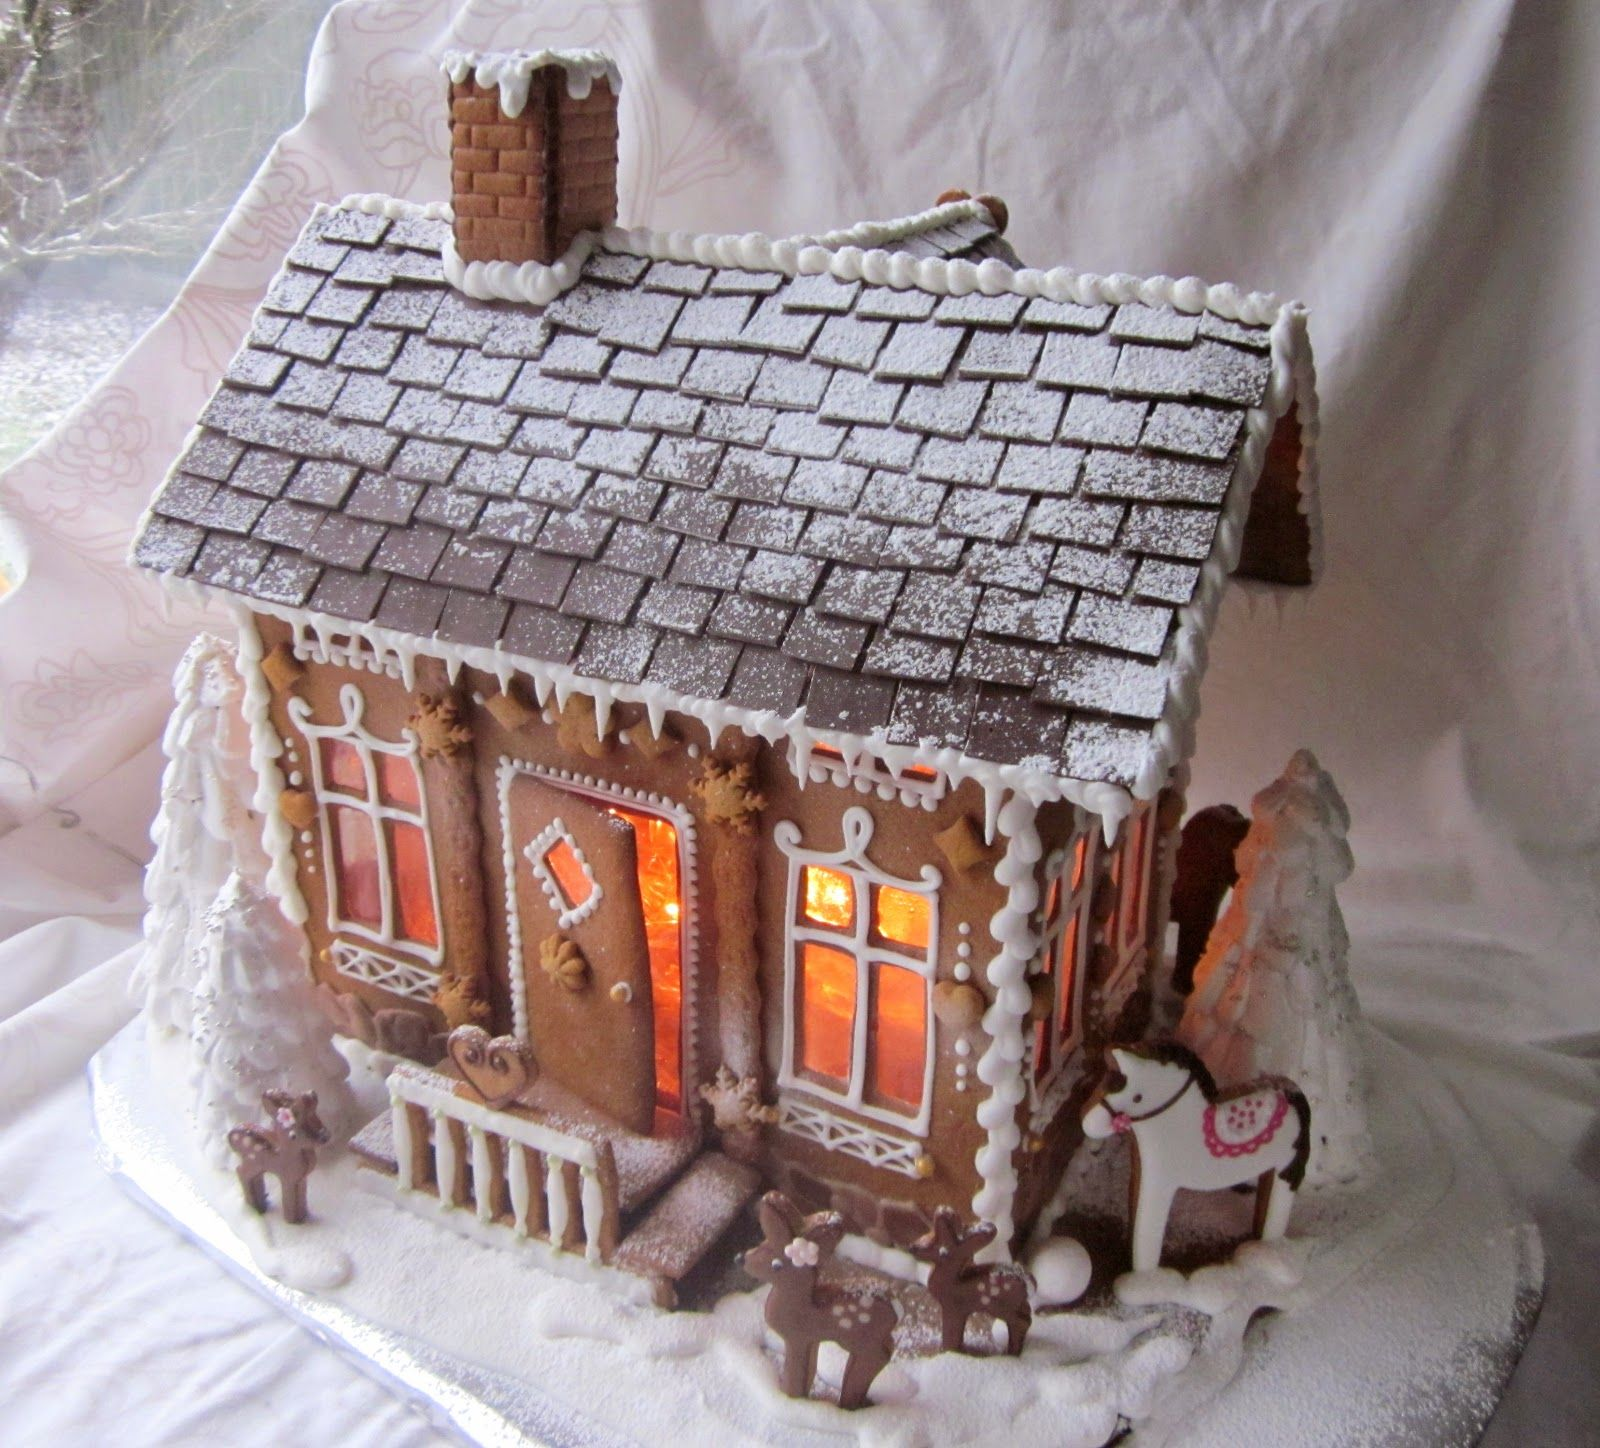 Gingerbread House Powder Sugar On The Roof For A Dusting